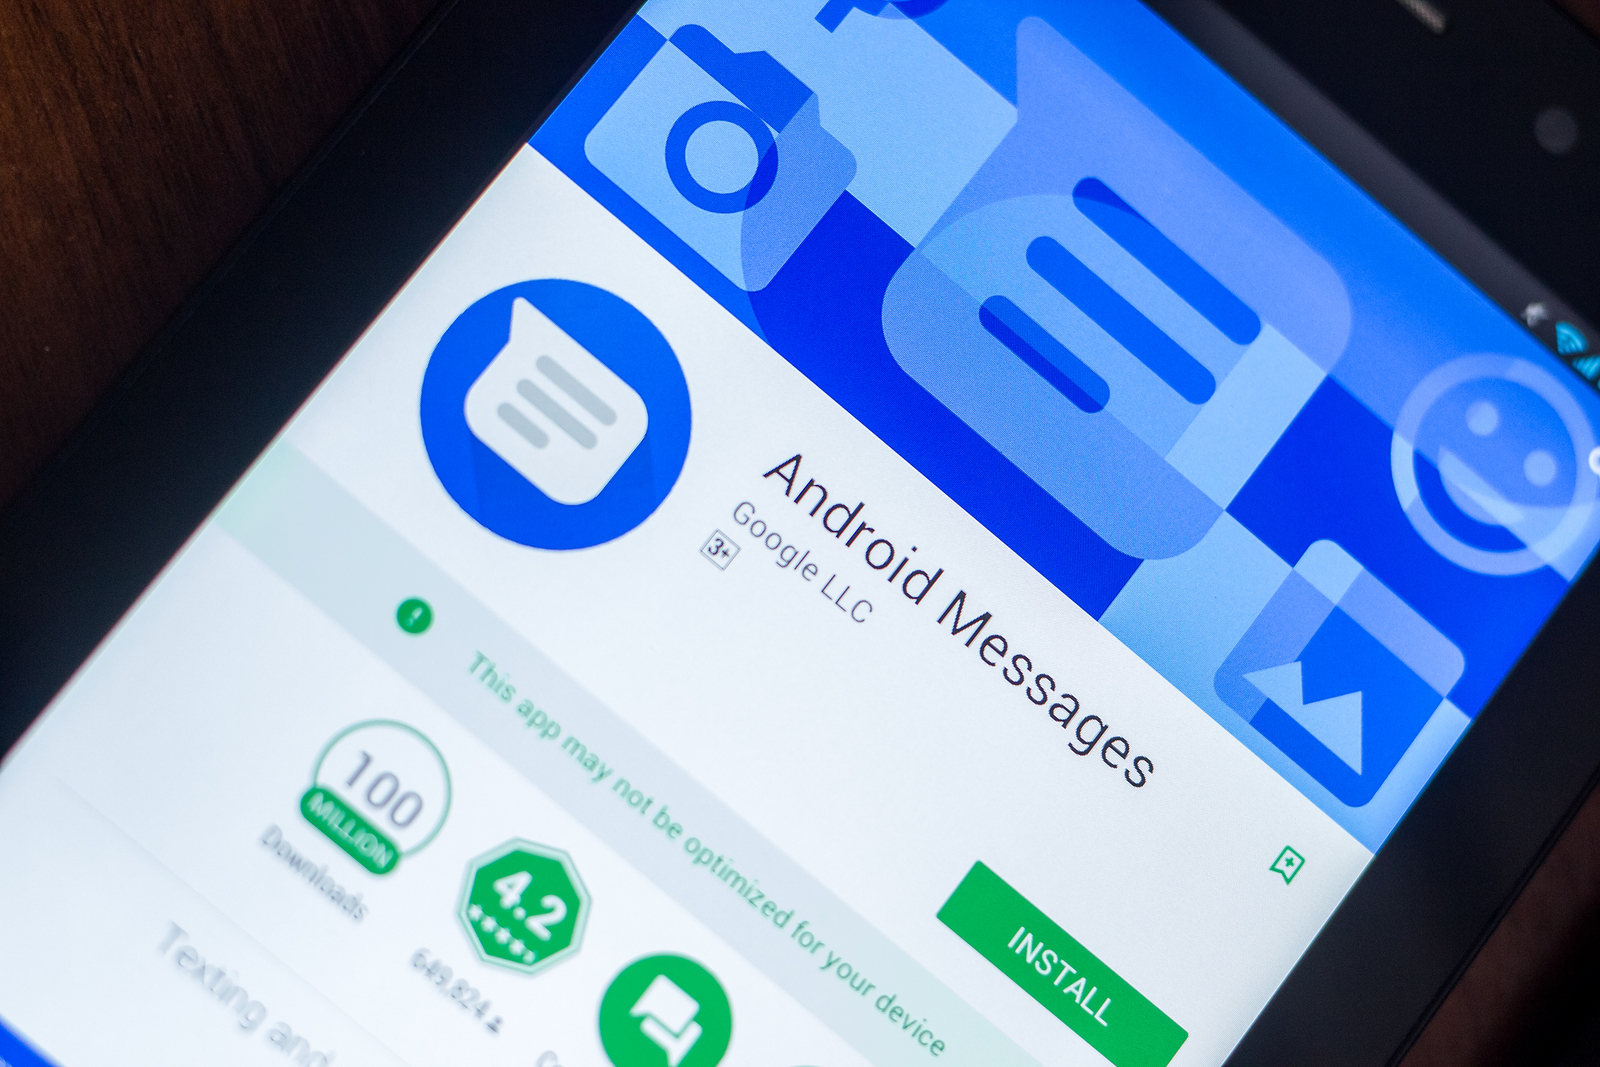 The desktop app is great, but Android Messages still aren't encrypted